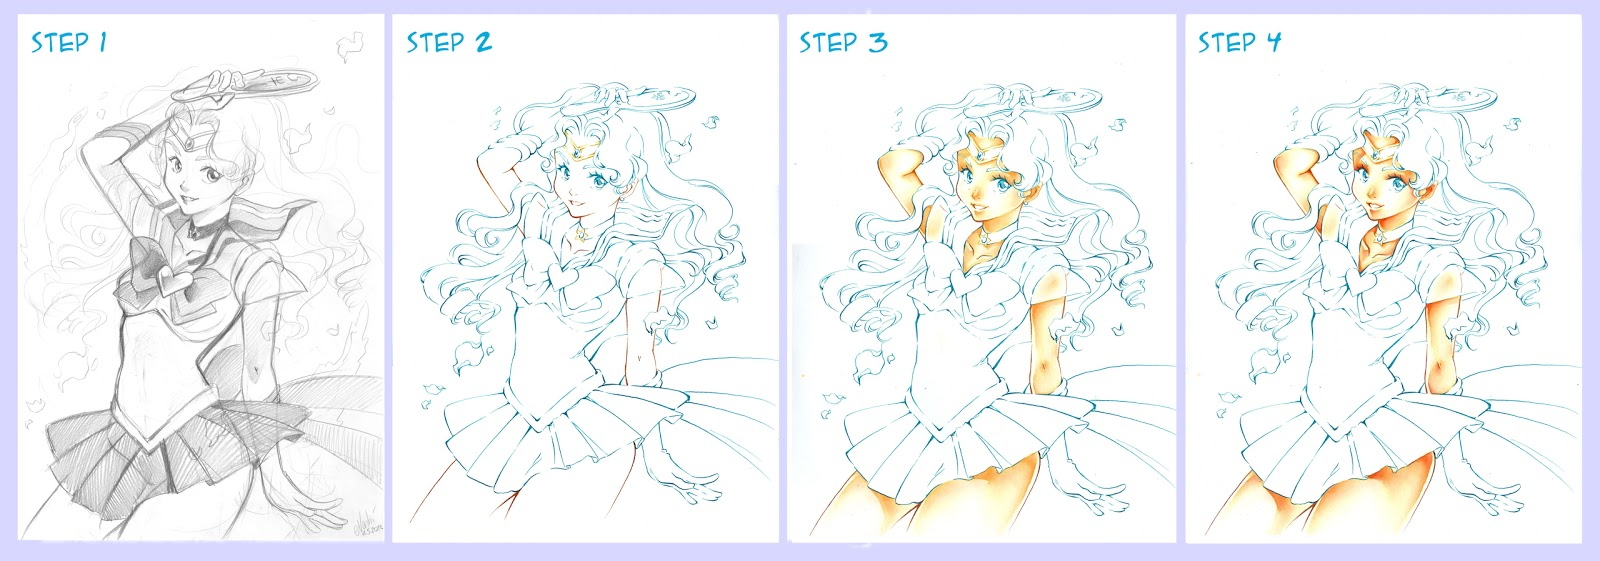 Nashi S World Traditionaly Manga Illustration Tutorial